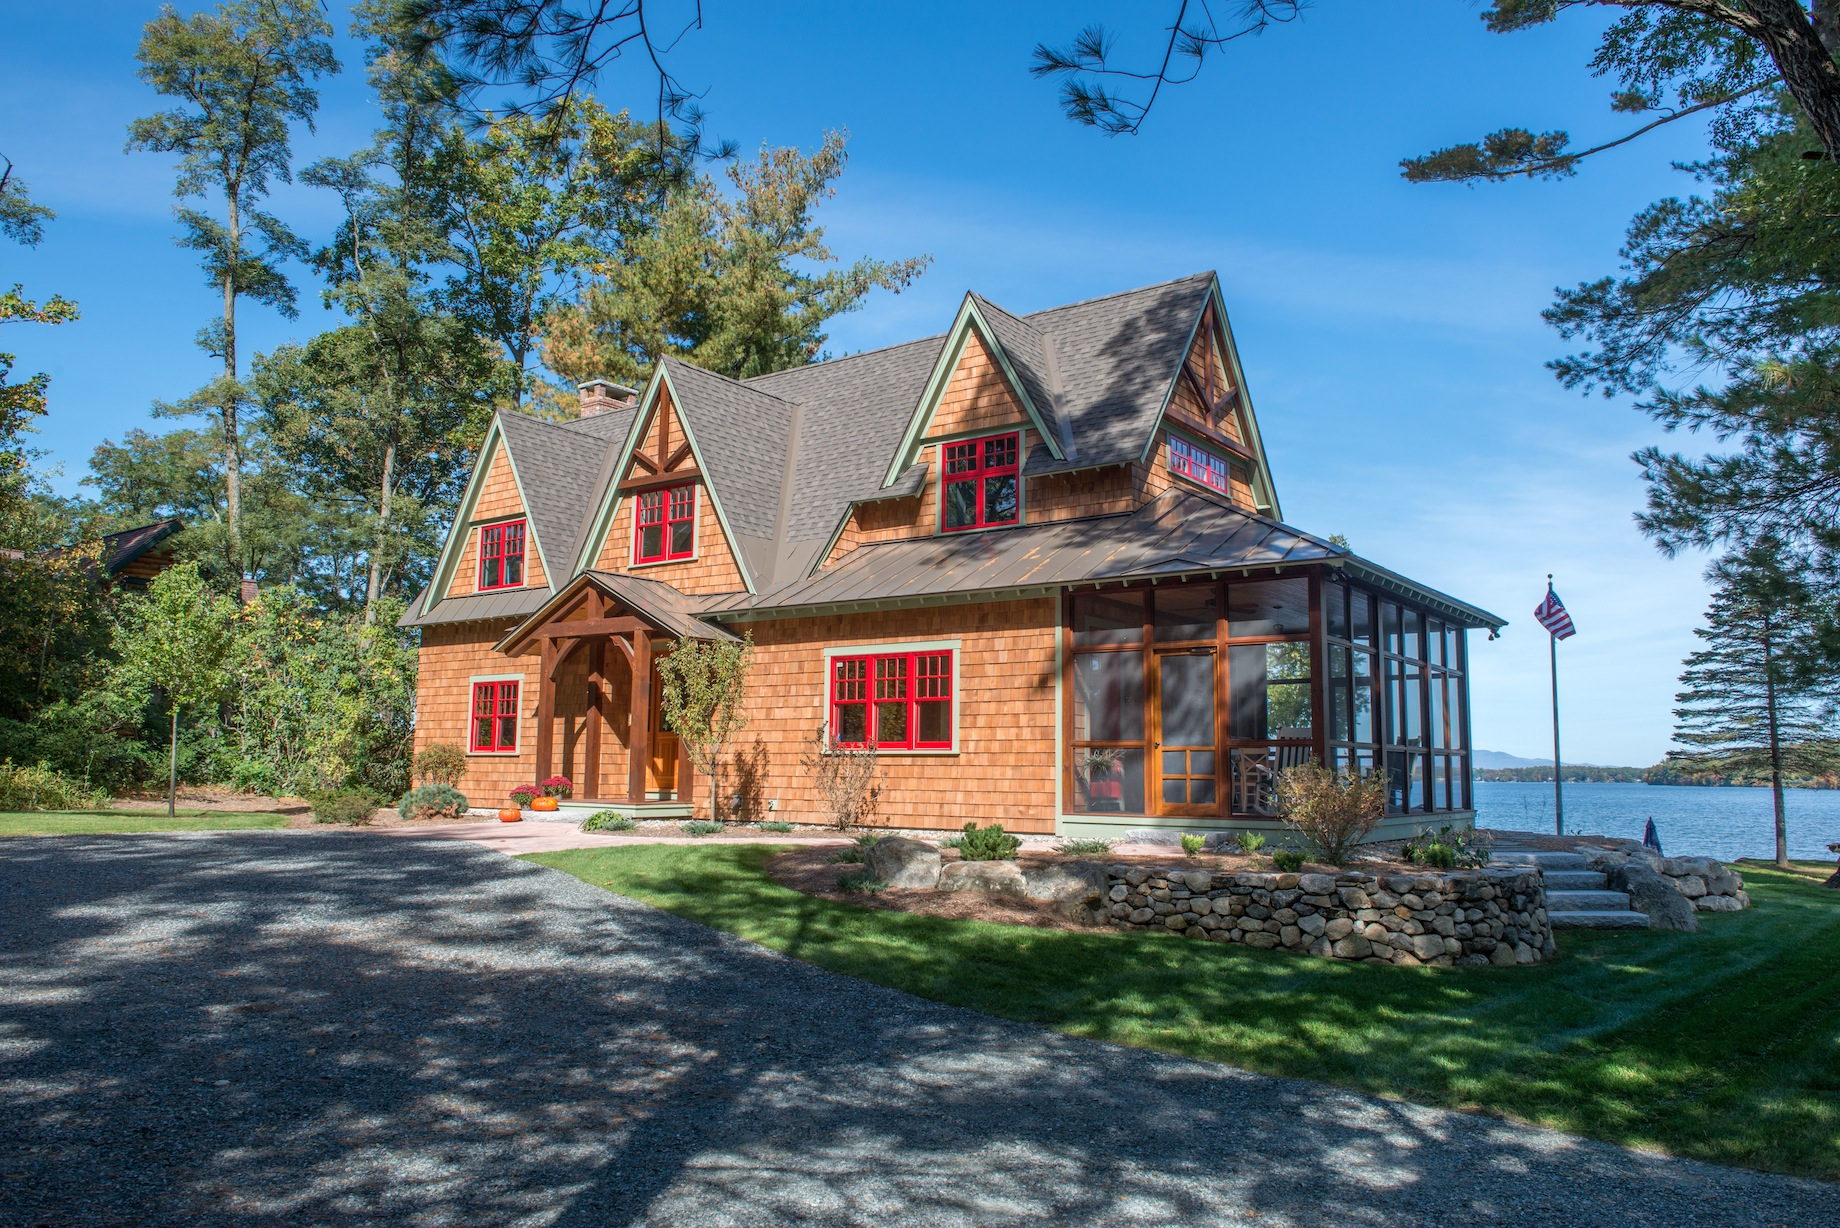 Sanbornton nh old hampshire designs for Custom home builder magazine